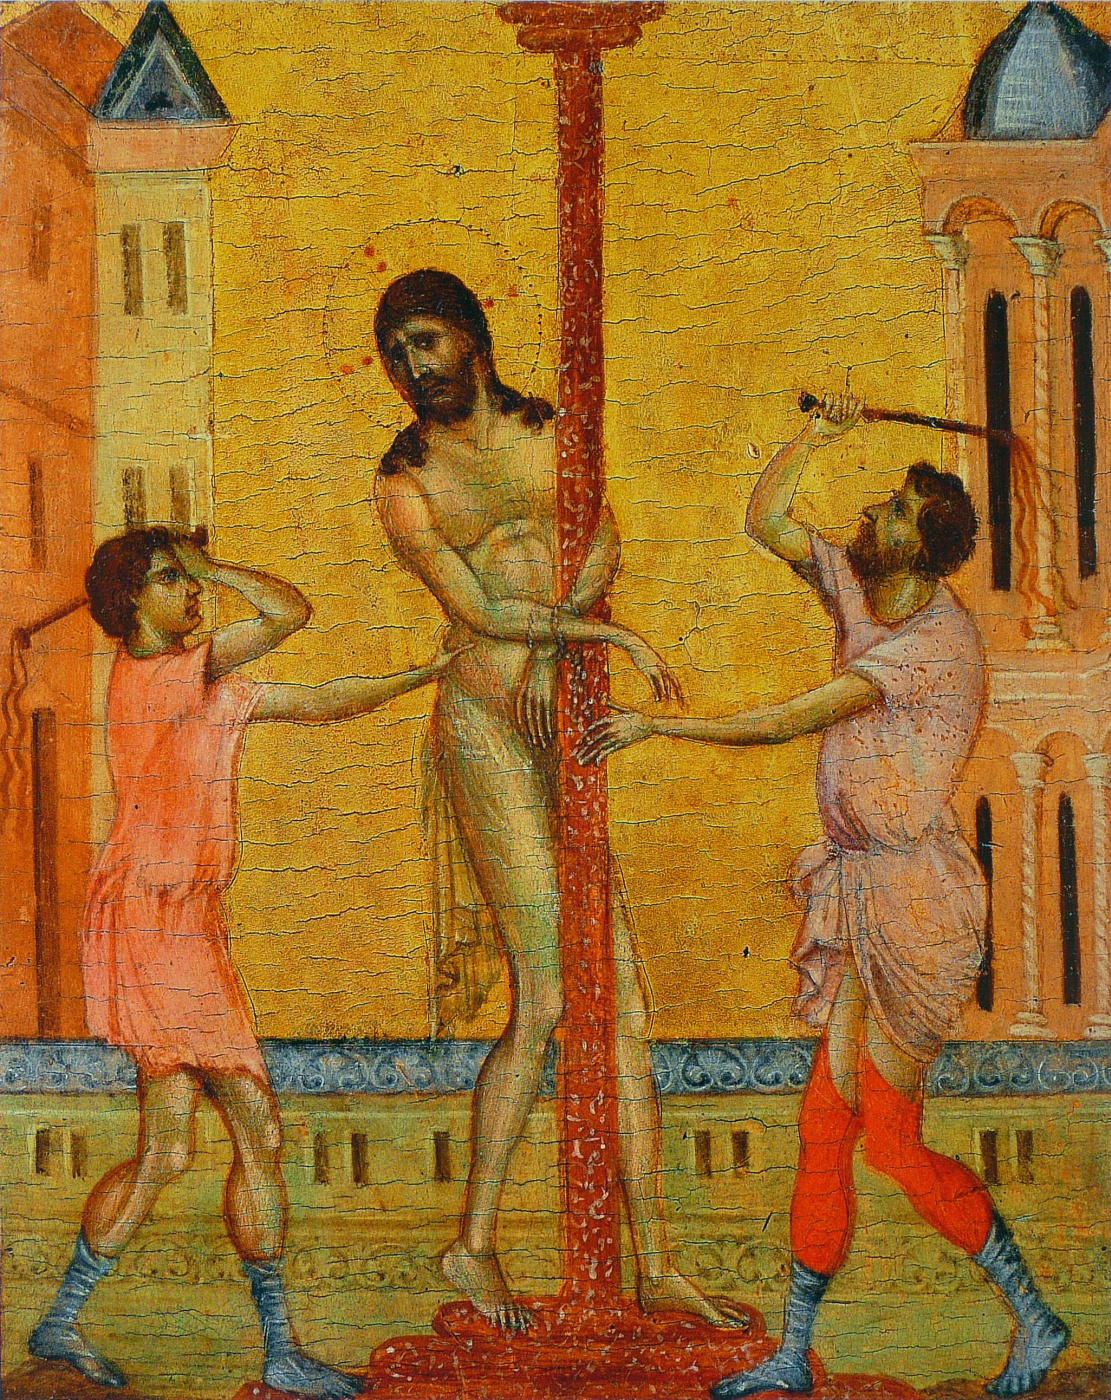 Cheney di Pepo Cimabue. The Flagellation of Christ